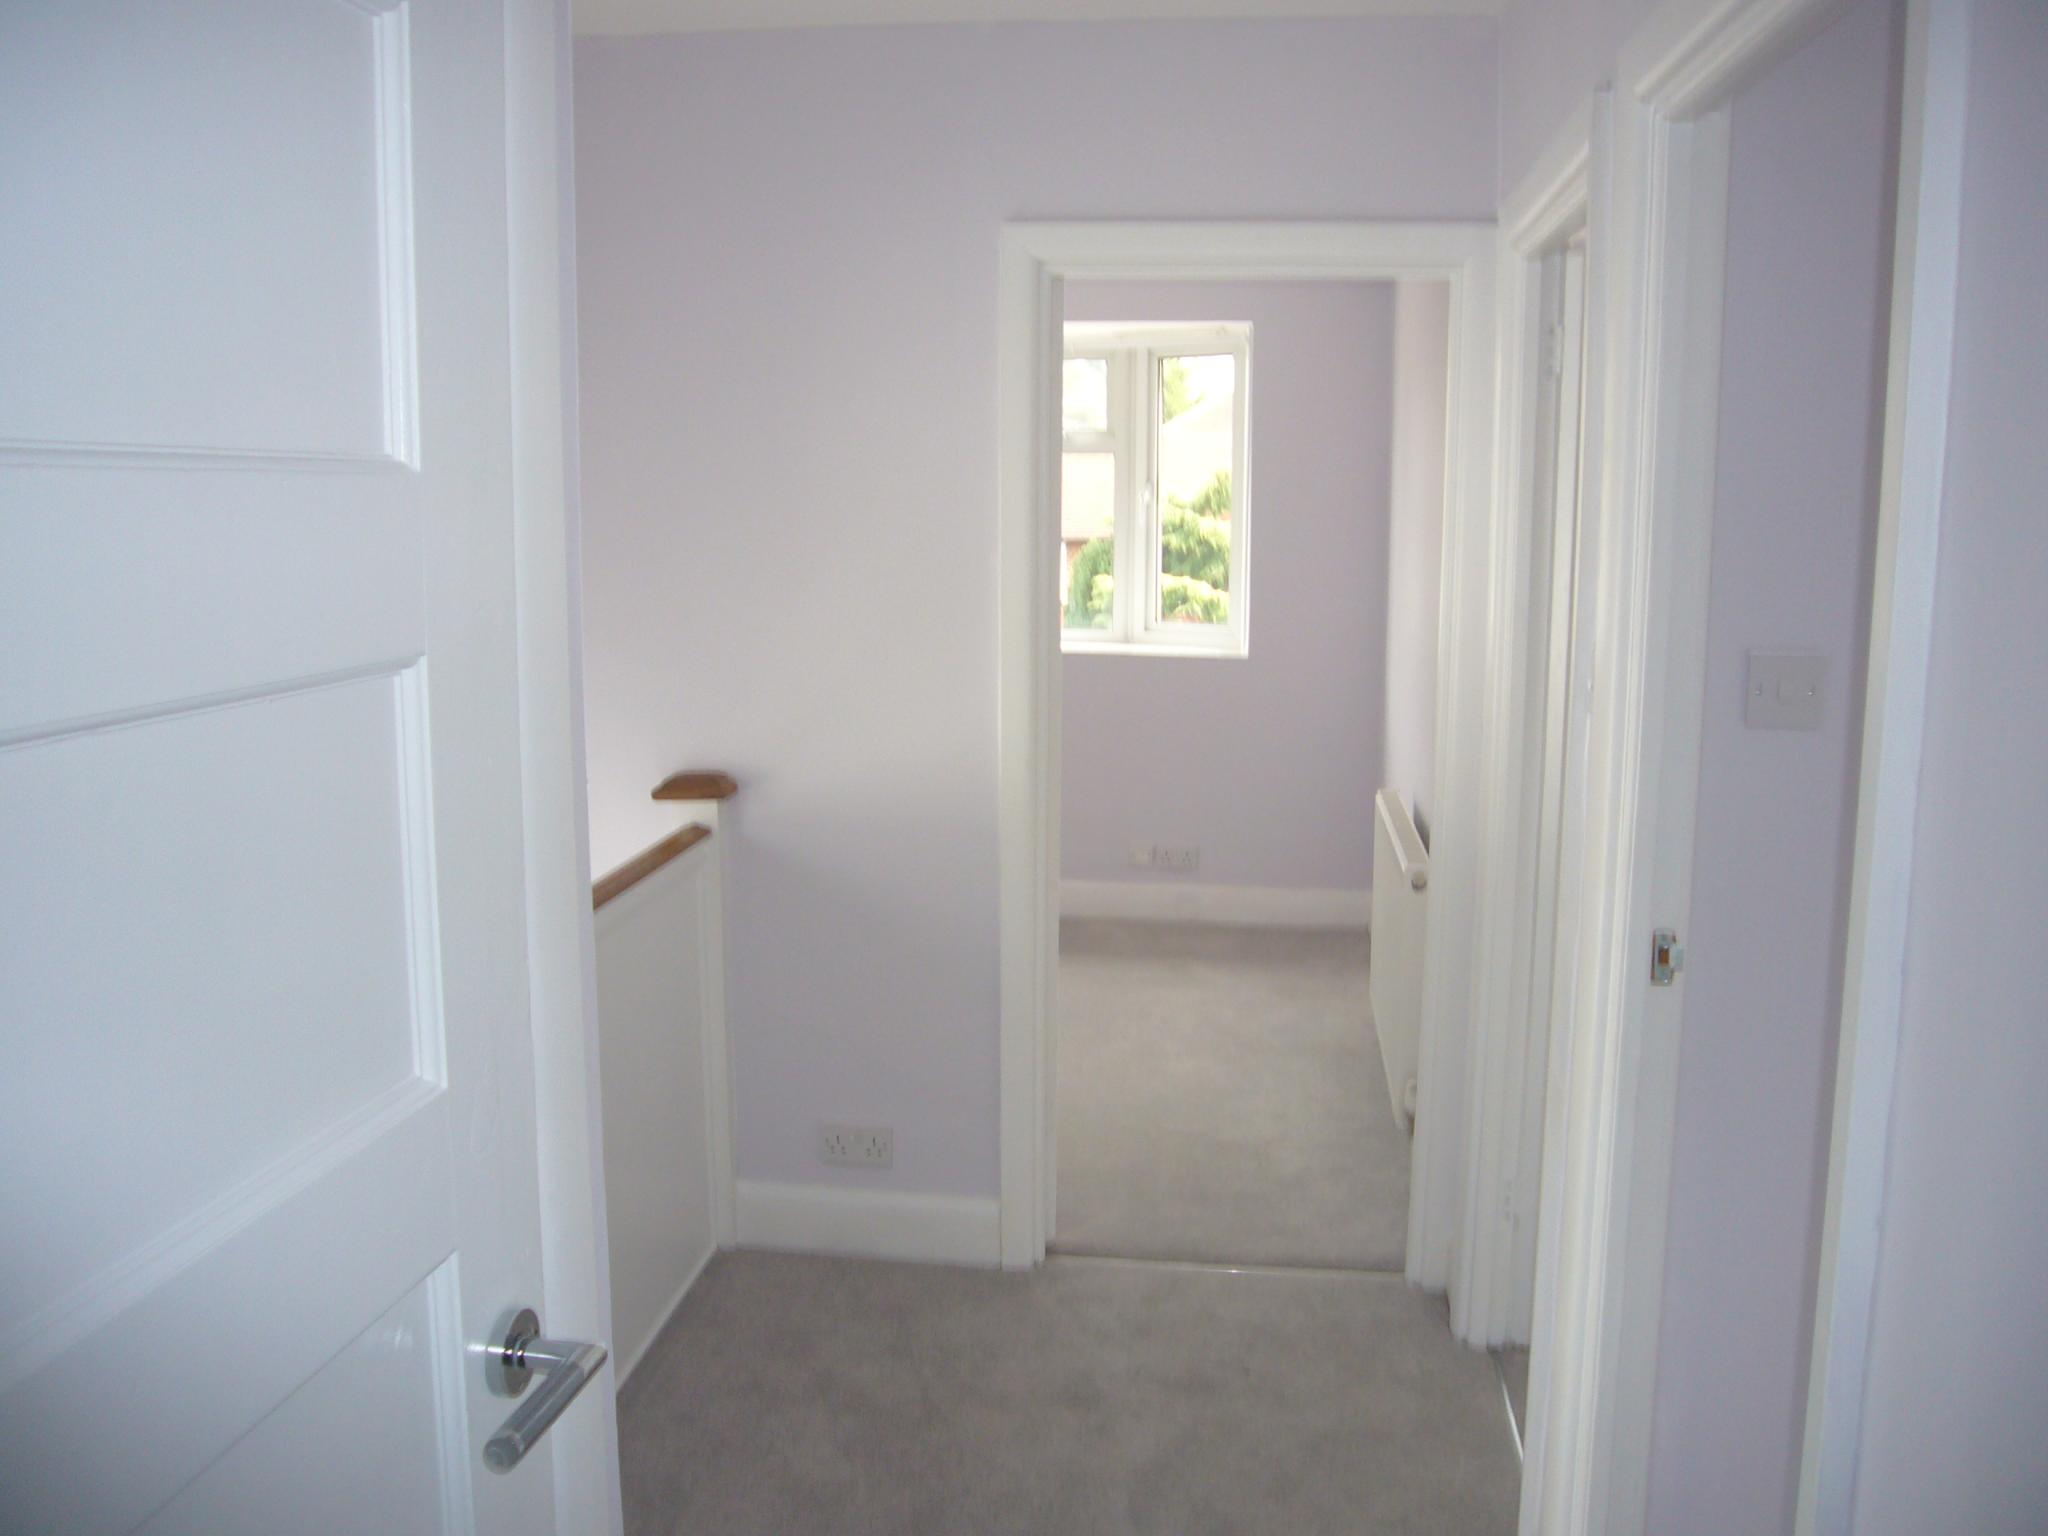 3 bedroom semi-detached house Let Agreed in Epsom - Photograph 8.